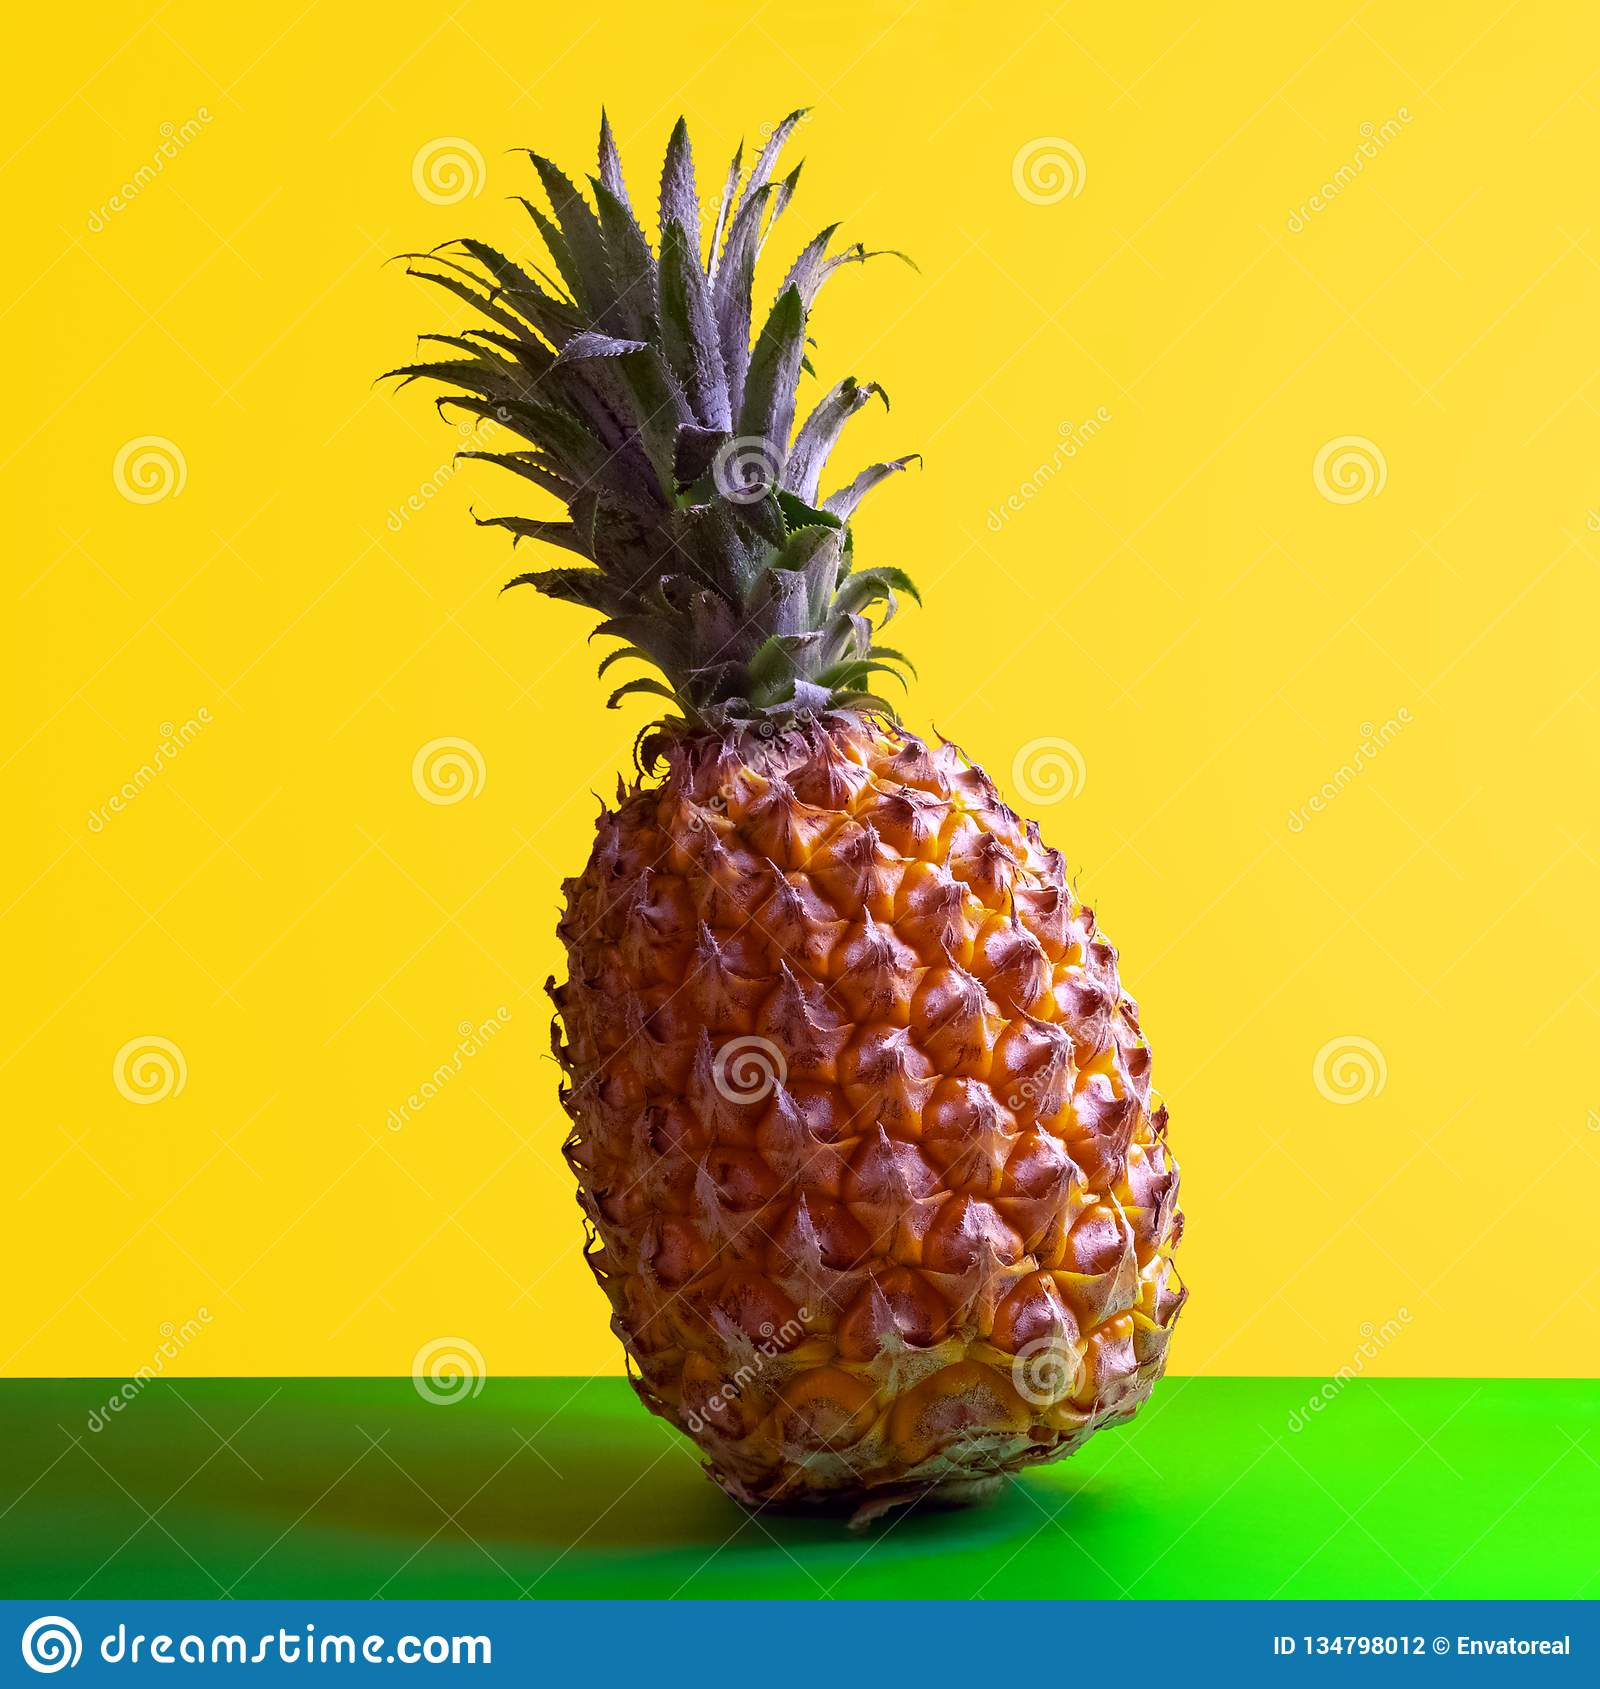 Square frame for pineapple advertising. Ripe sweet exotic fruit stands on a green table with a yellow background. Clipart for